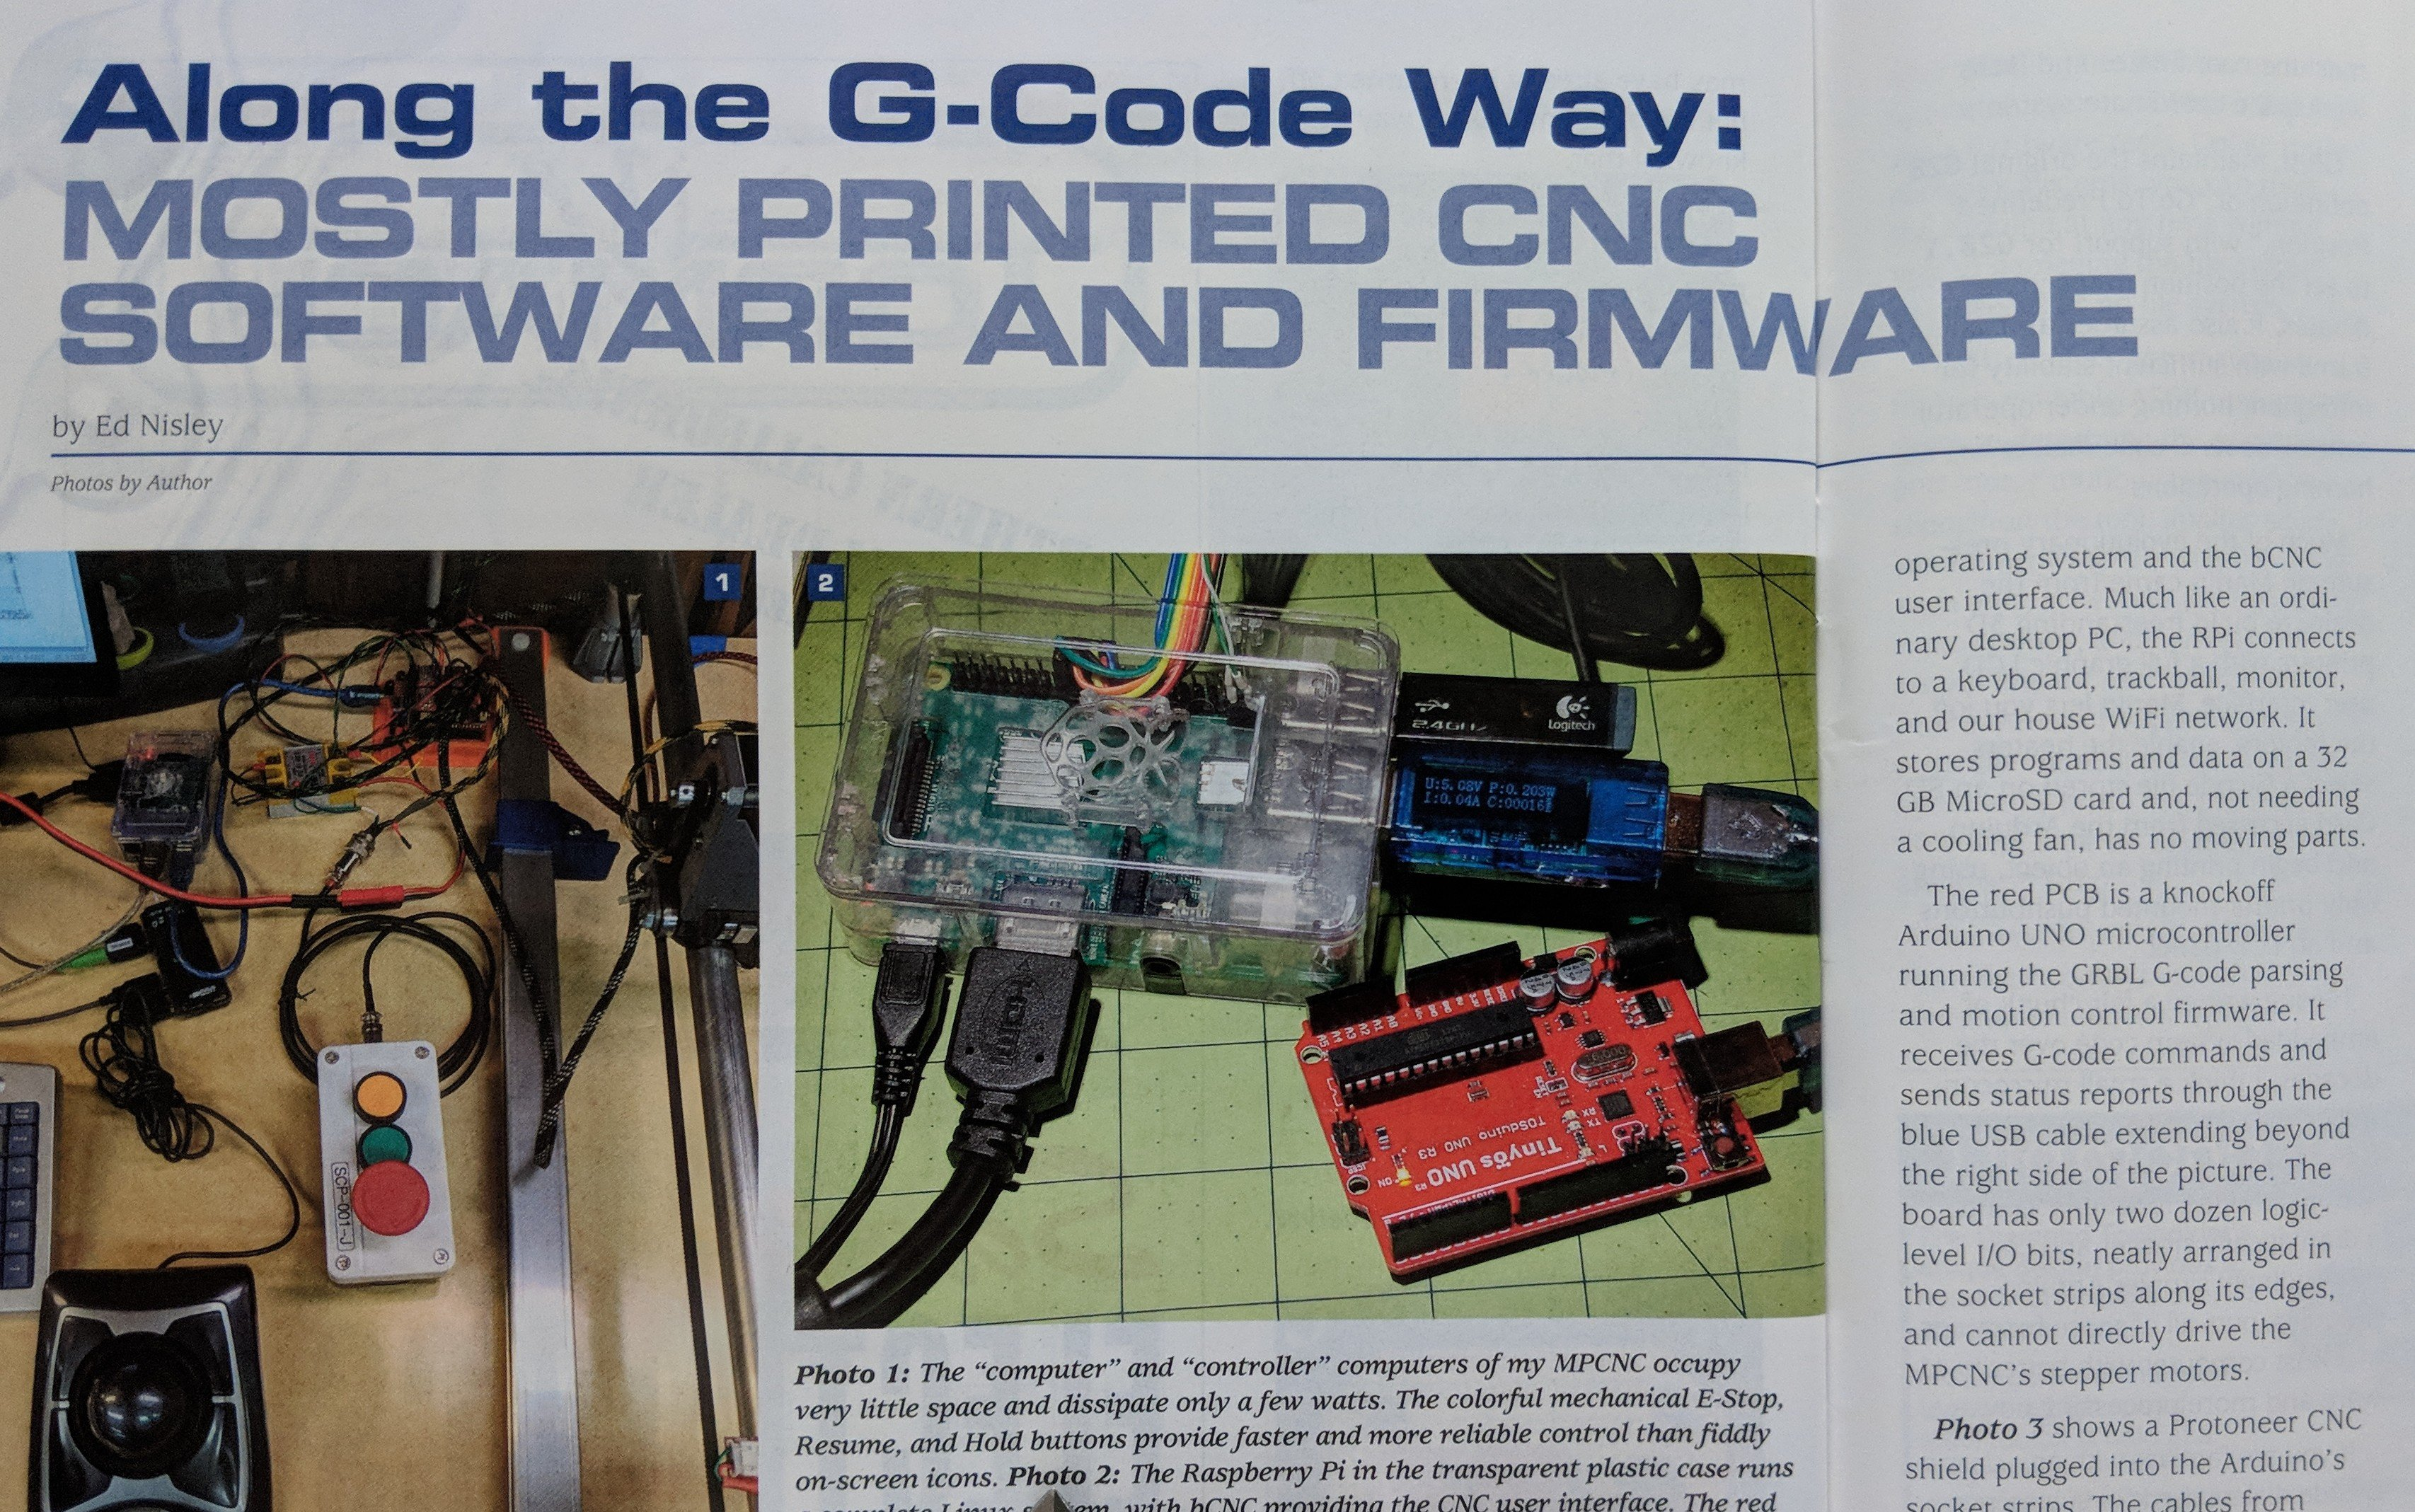 3 New Articles V1 Engineering Small Modifications In Firmware And Schematic Diagram Were Made By A Few Pages Deeper Into The Same Spring 2018 Edition Of Digital Machinist Is Article Tom Matukas My Mostly Printed Cnc Making Progress